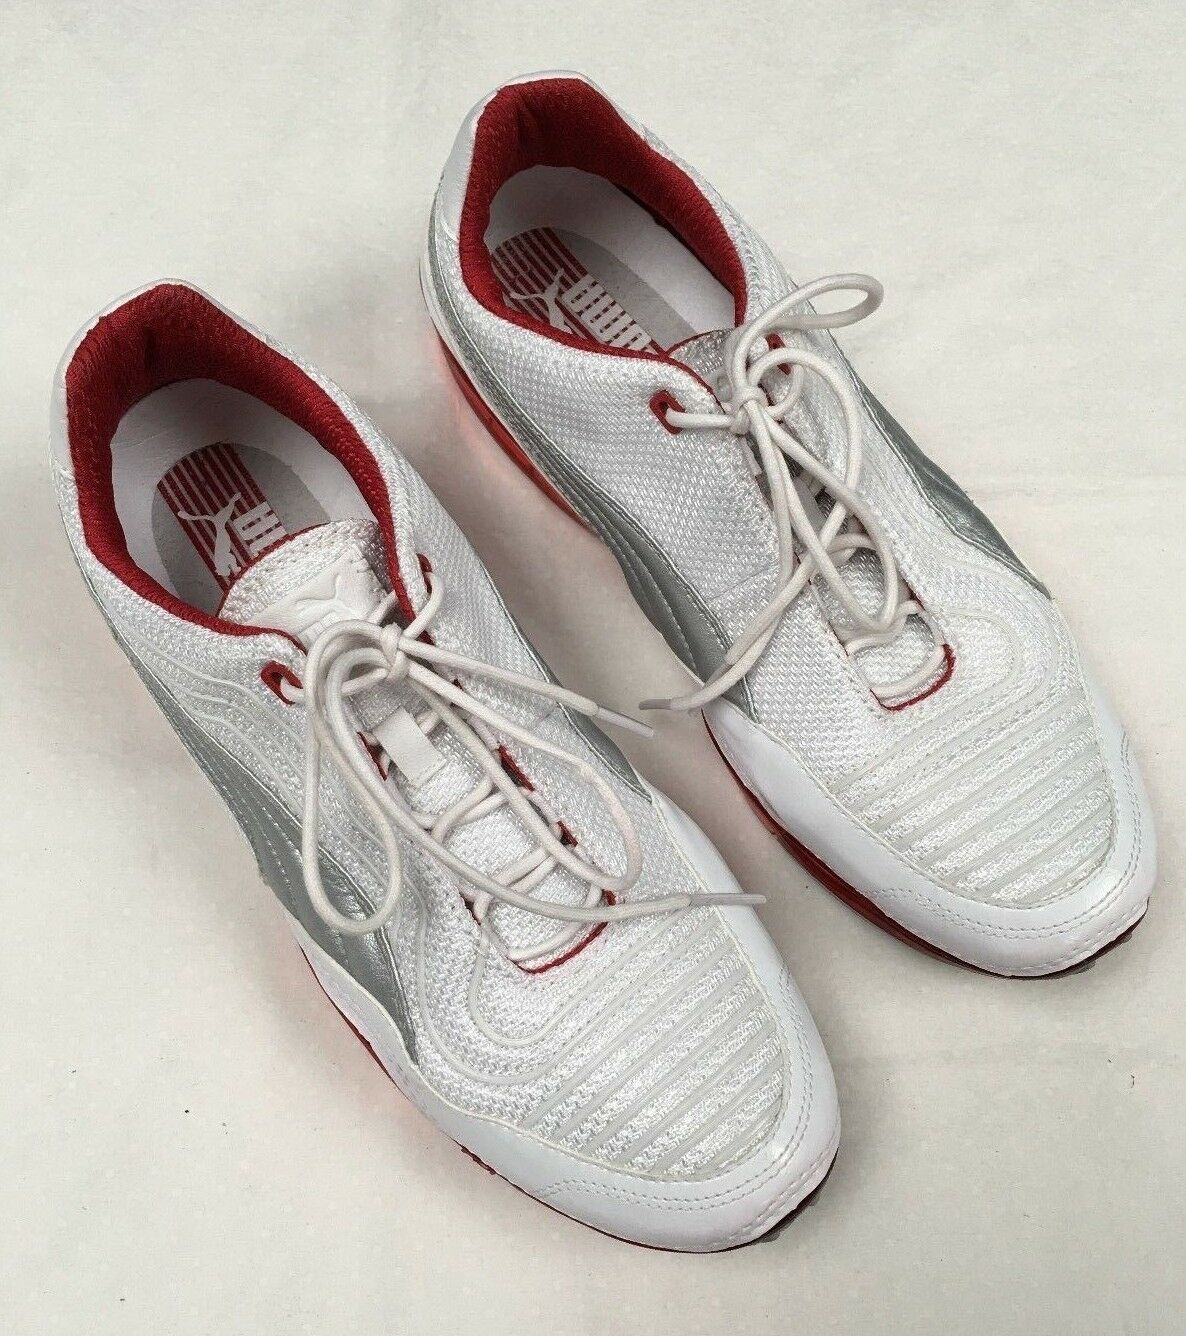 Puma men's white lace up sneaker with leather trim size 10